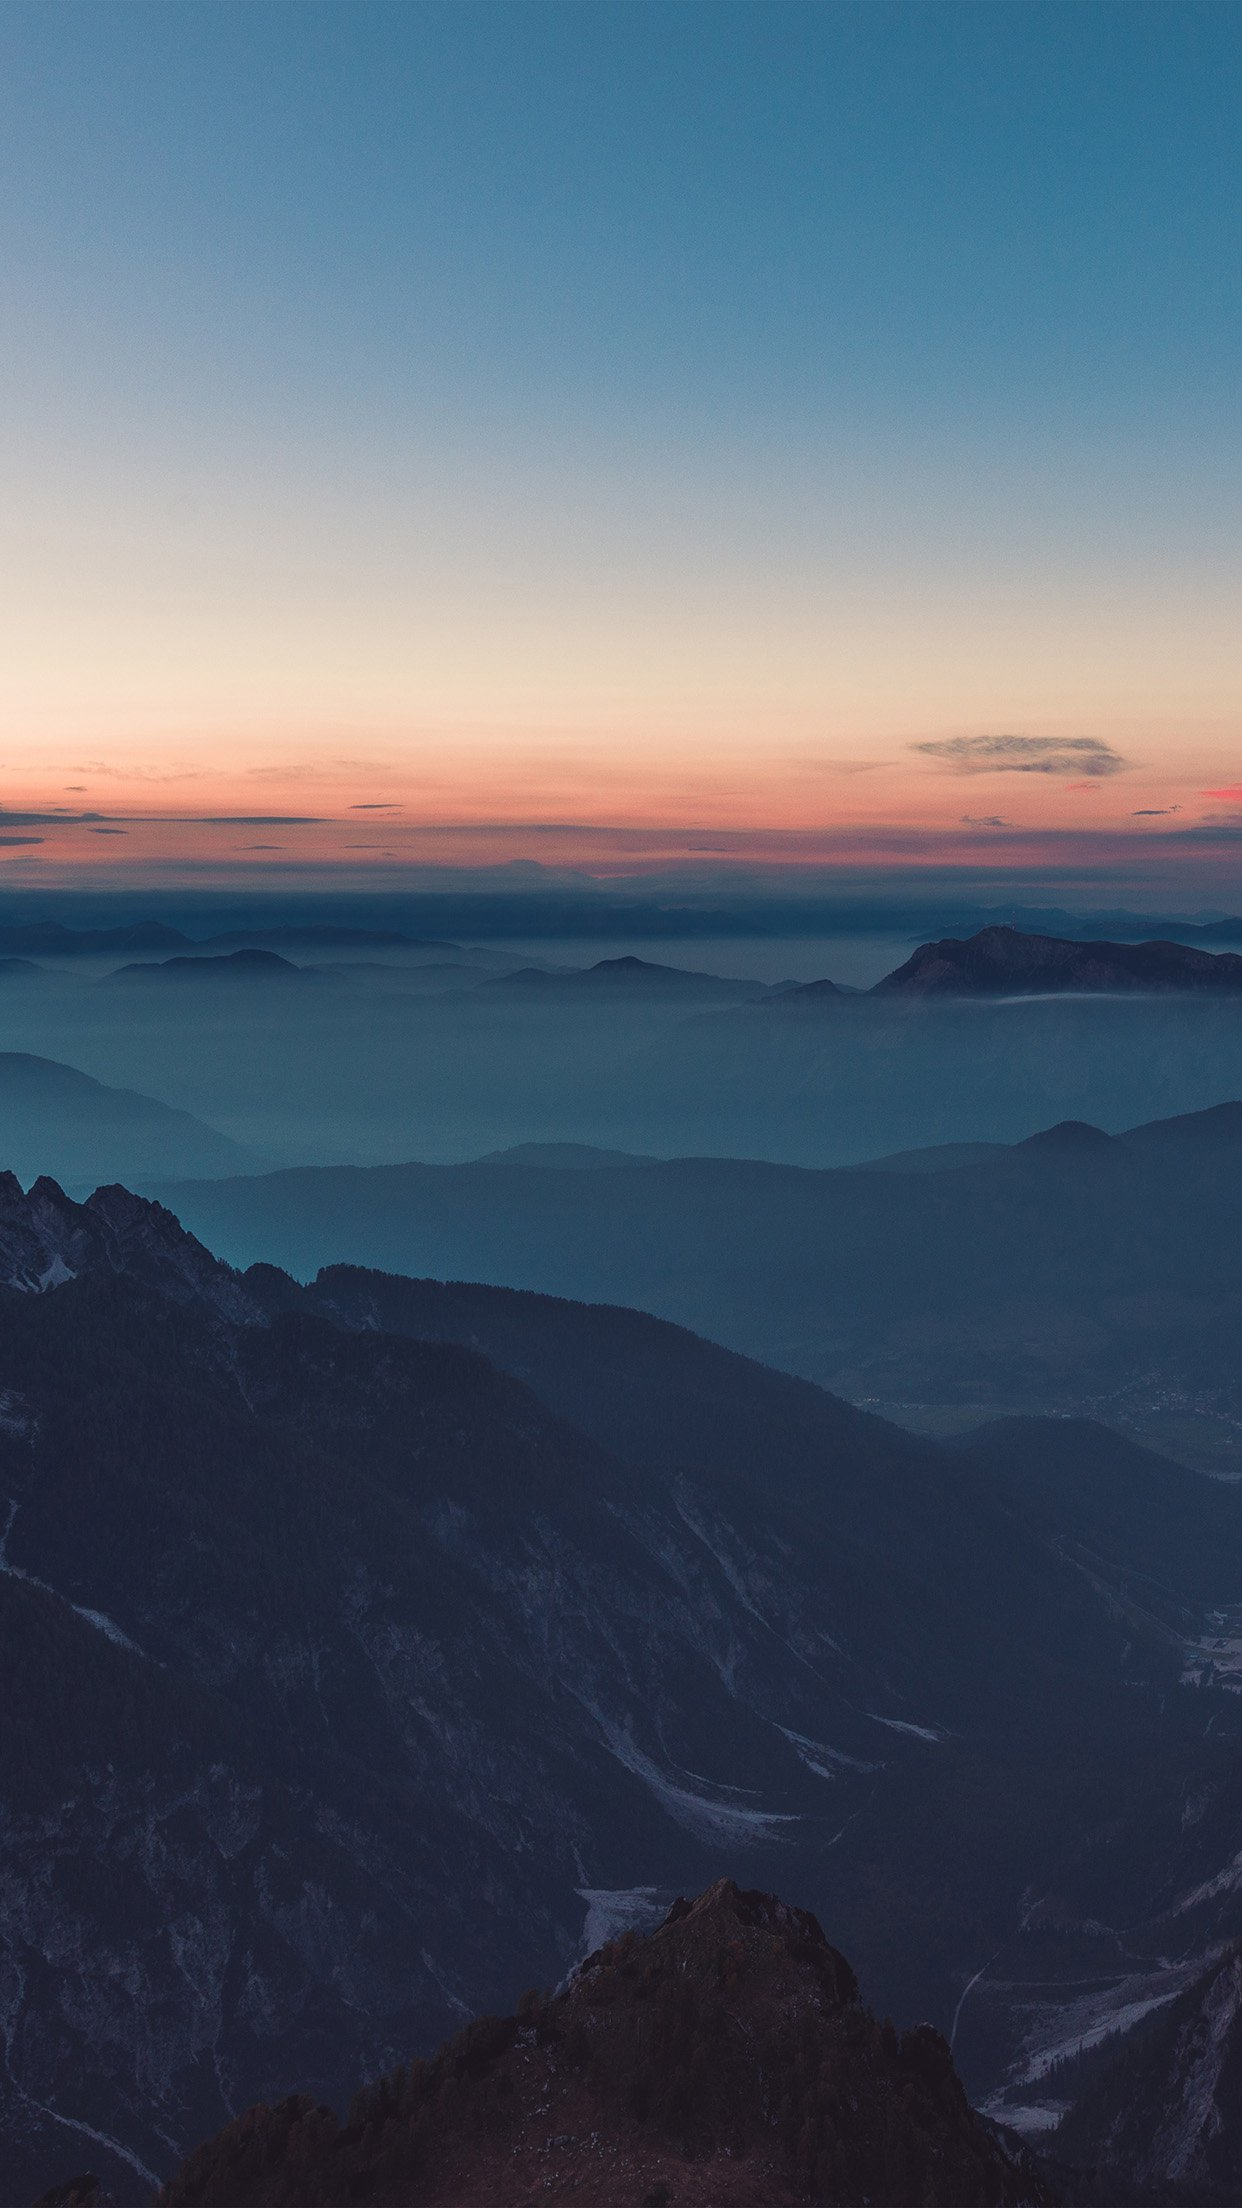 Download Wallpaper Mountain Android - Sky-Red-Blue-Sunset-Mountain-Hight-Cloud-Nature  Photograph_43727.jpg